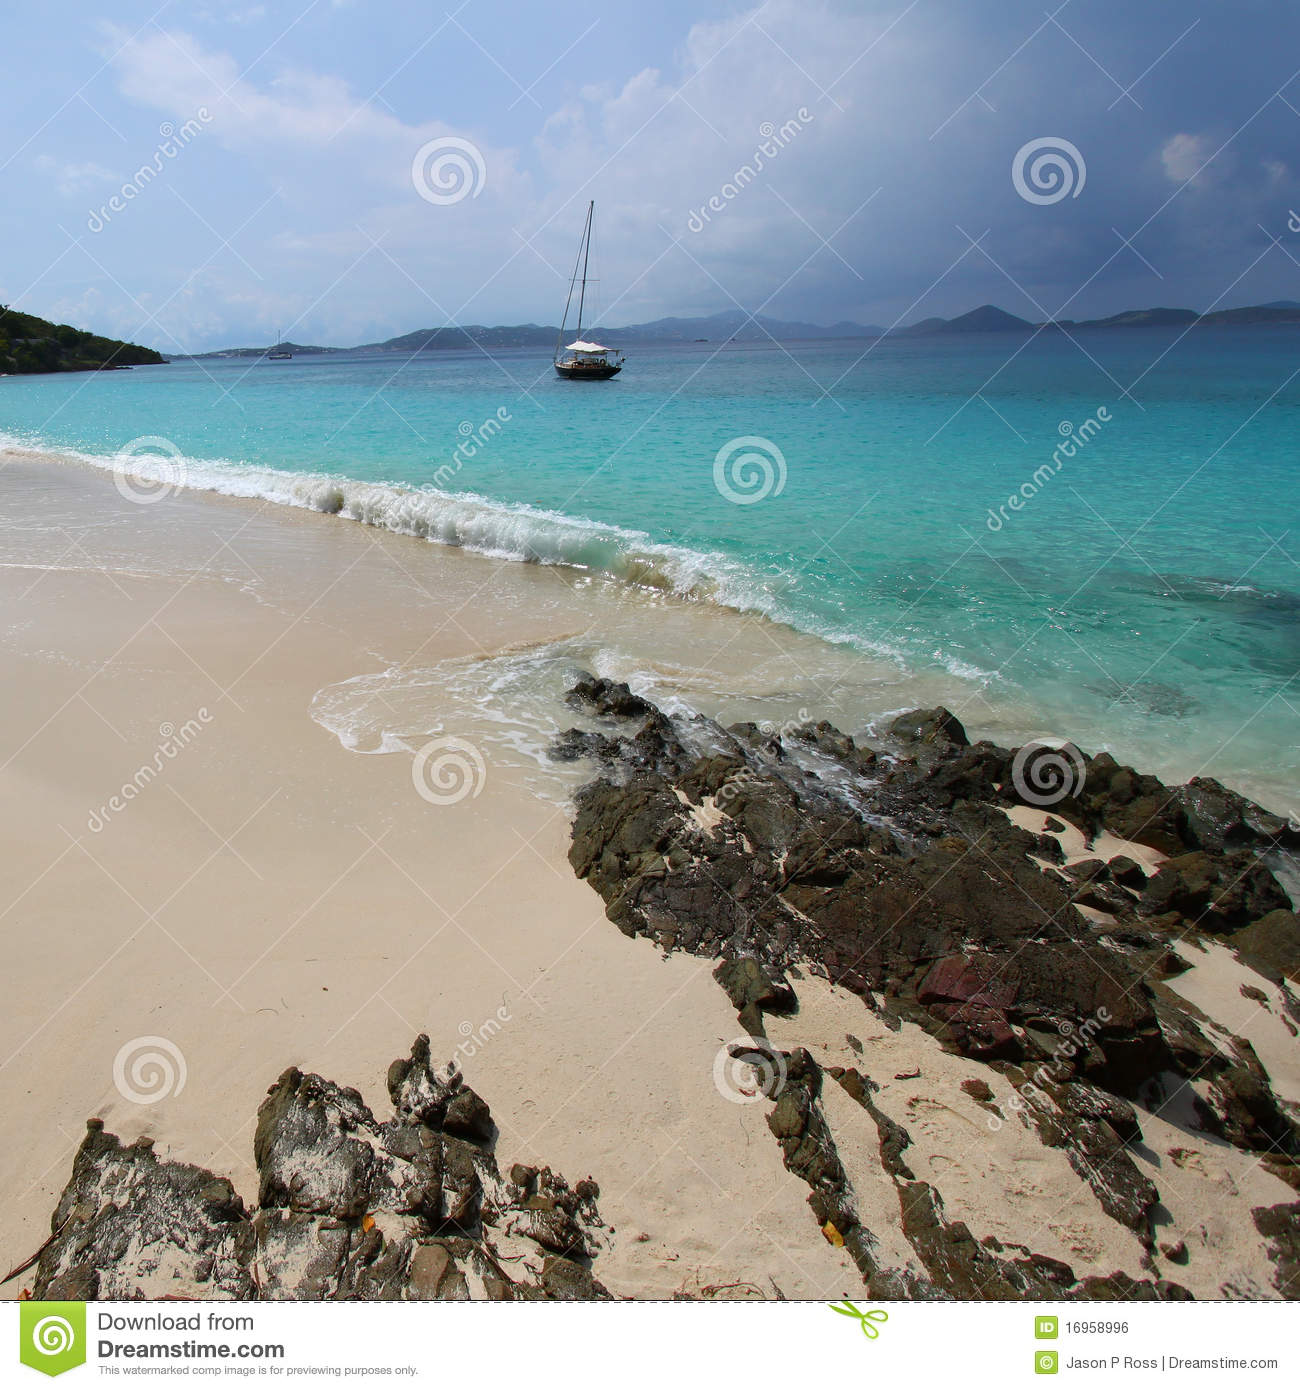 Cumulus Clouds Over Caribbean Turquoise Sea Stock Image